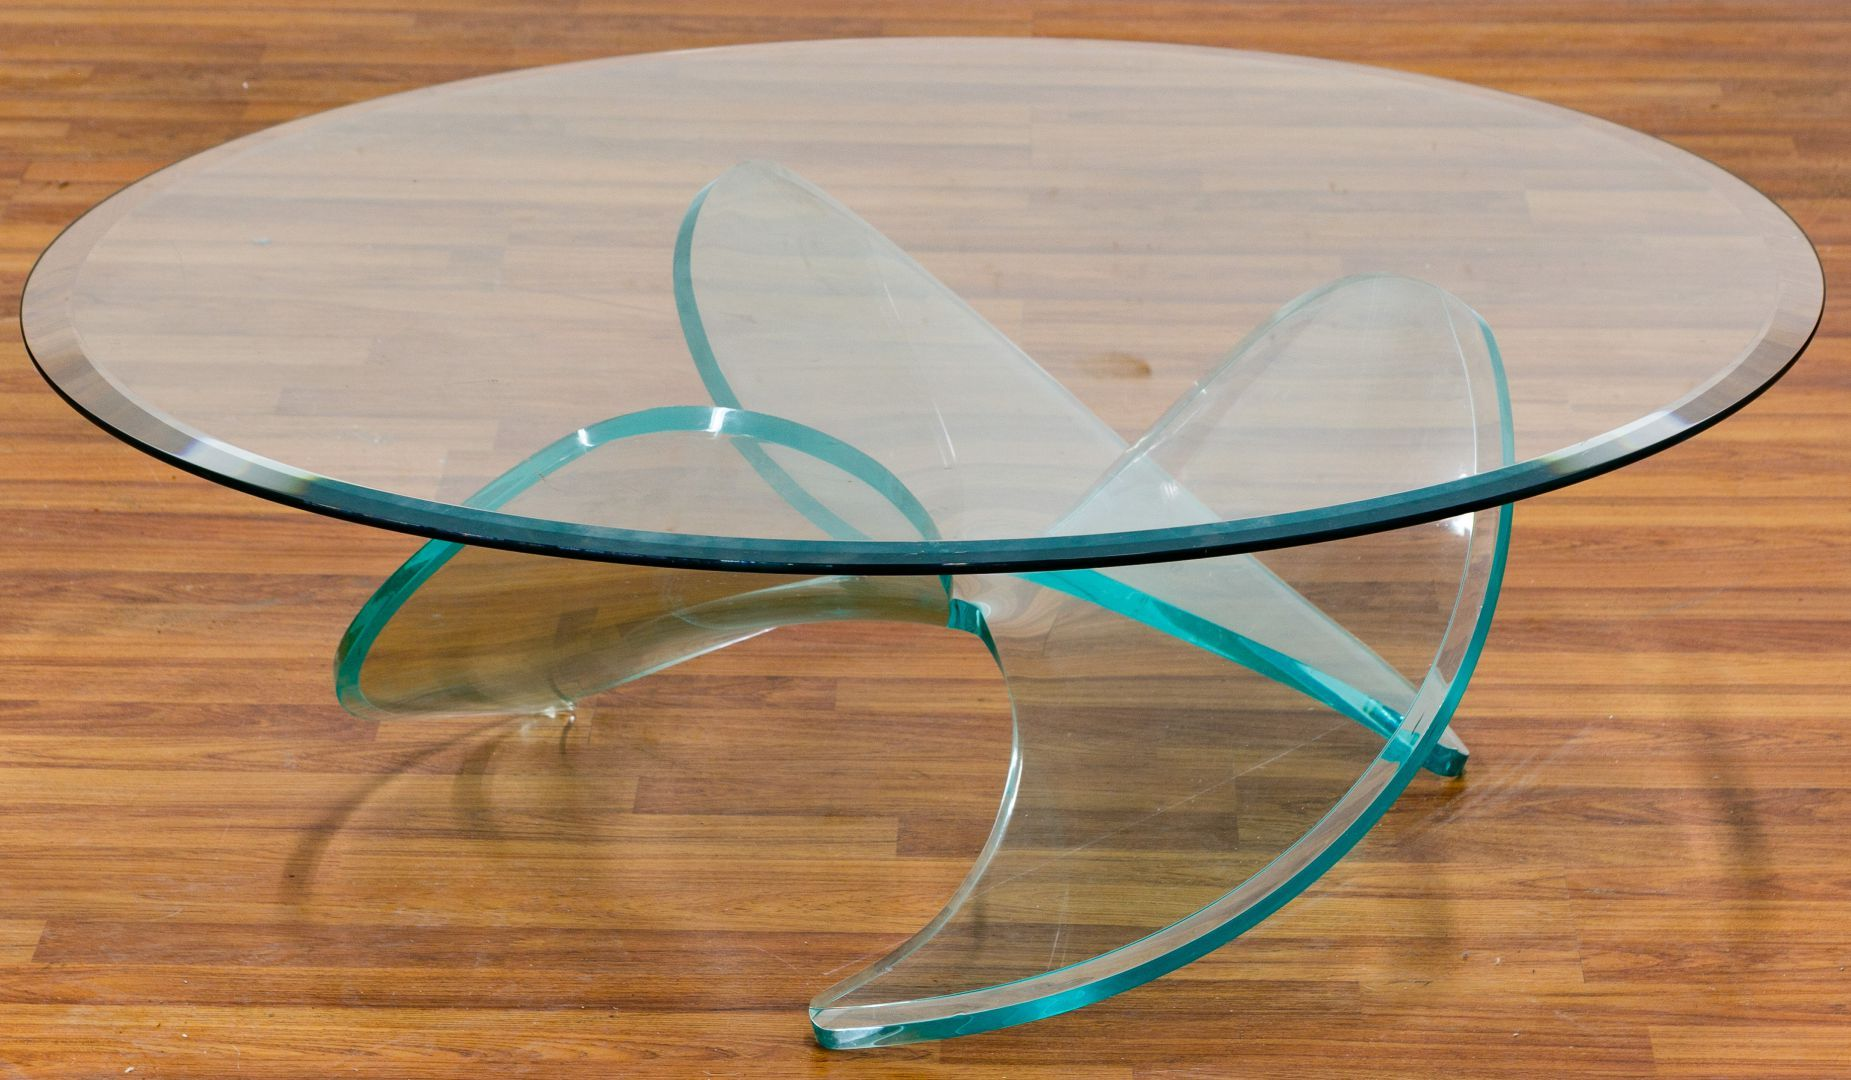 Lot 46 Mcm Lucite Propeller Table By Knut Hesterberg 20th Century Having A Propeller Style Lucite Base With A Roun Lucite Coffee Tables Coffee Table Table [ 1080 x 1851 Pixel ]